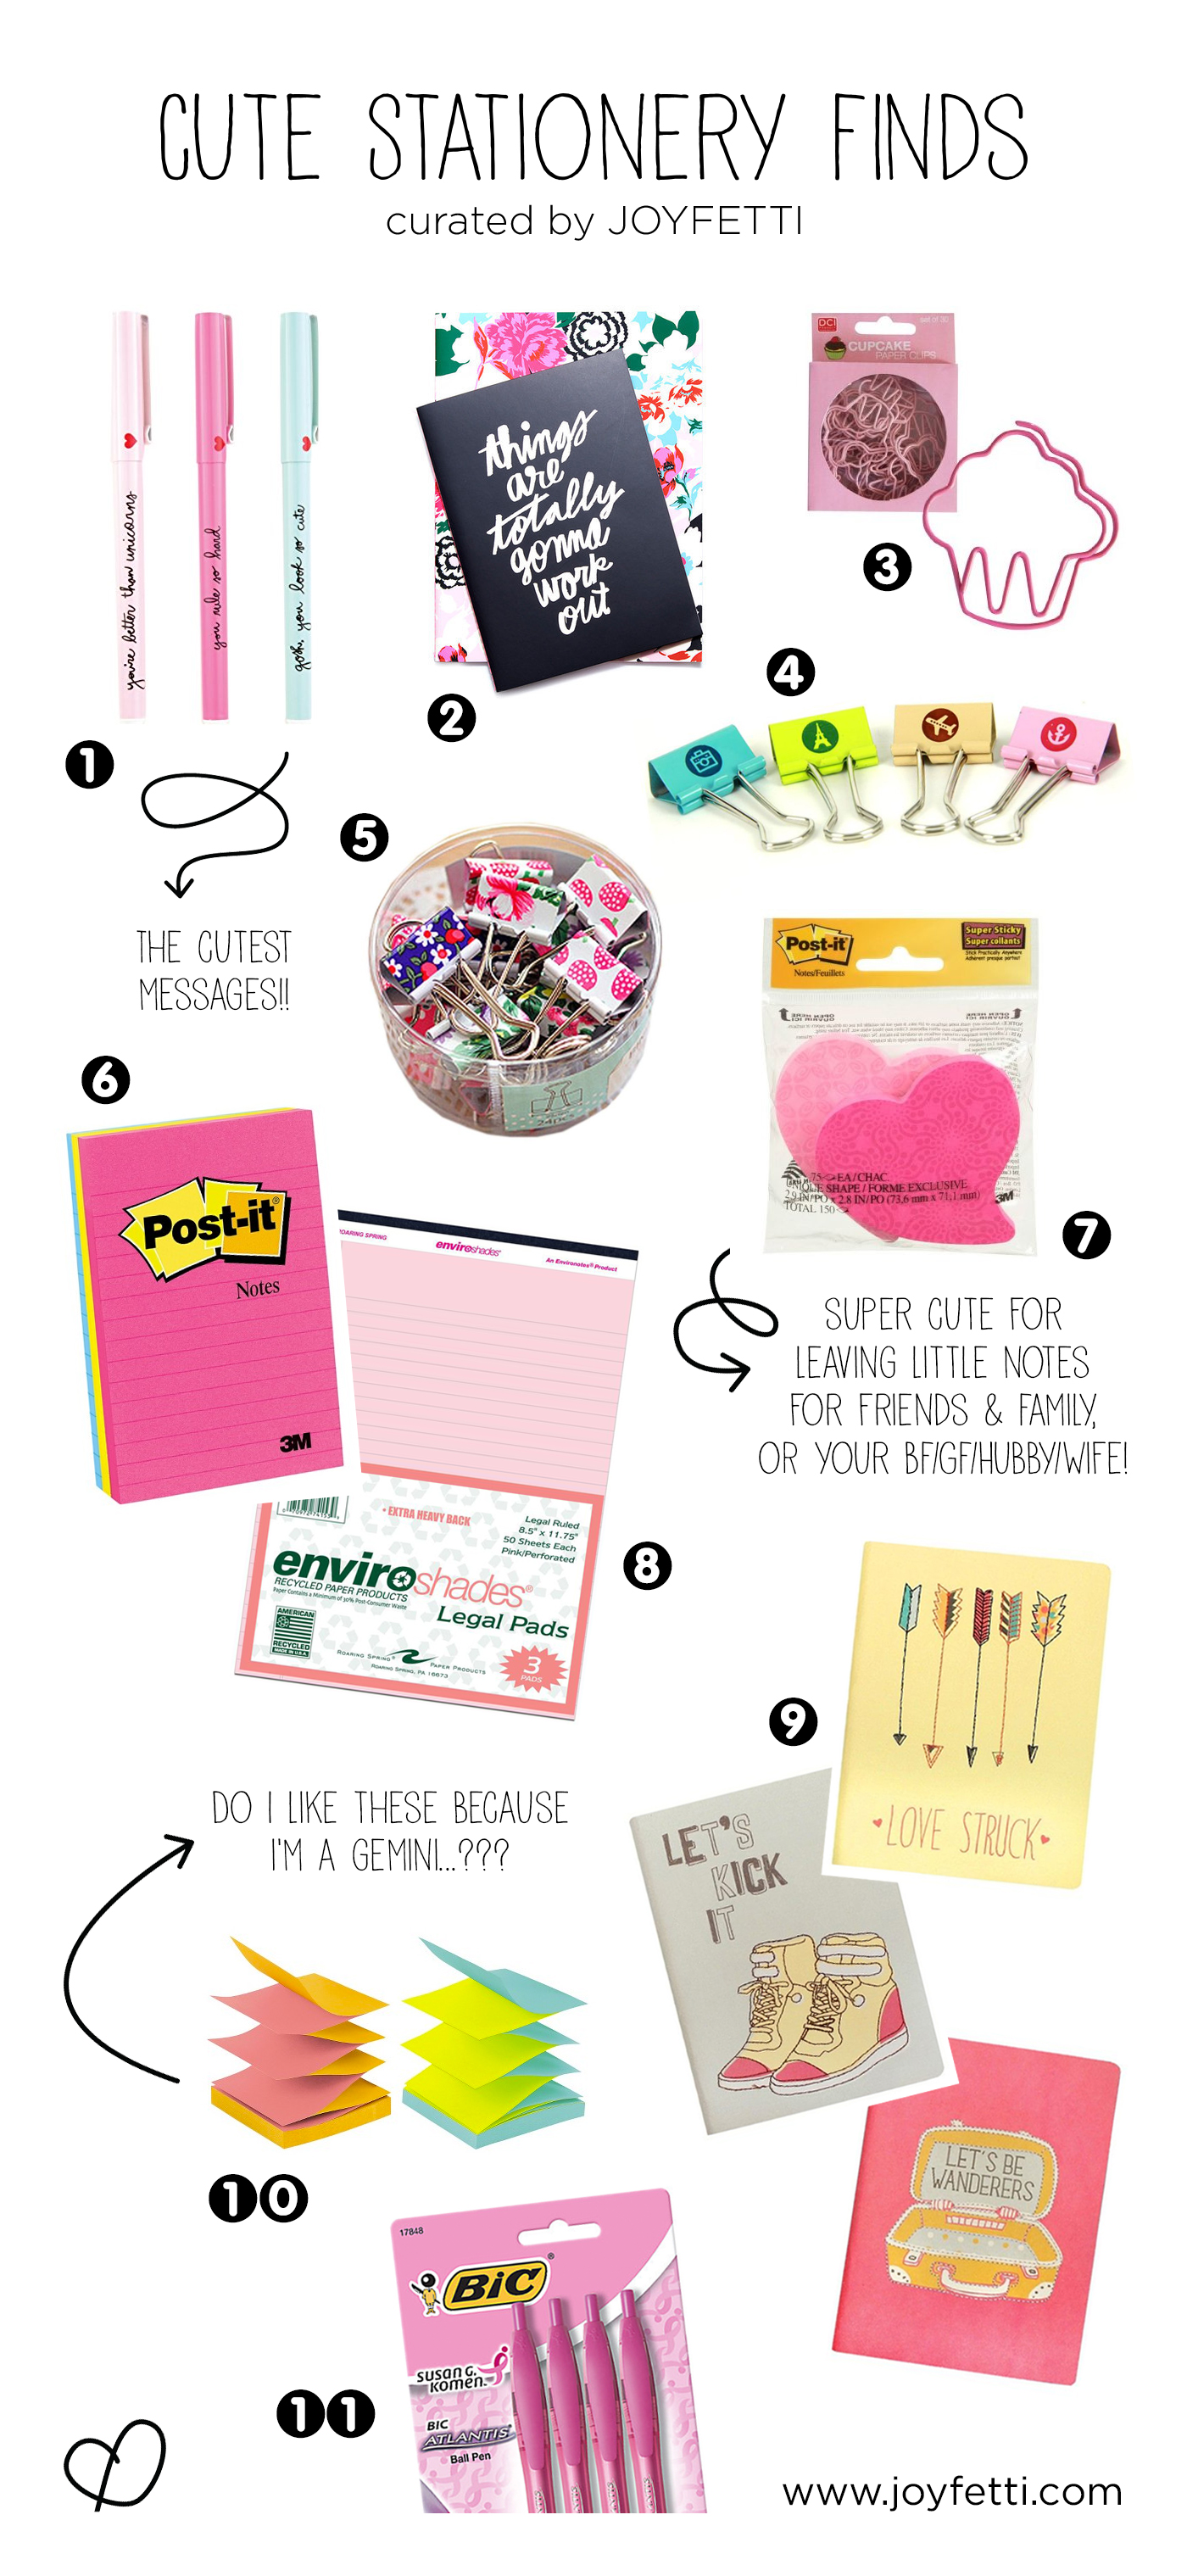 Cute stationery finds on joyfetti.com, #JOYFETTI